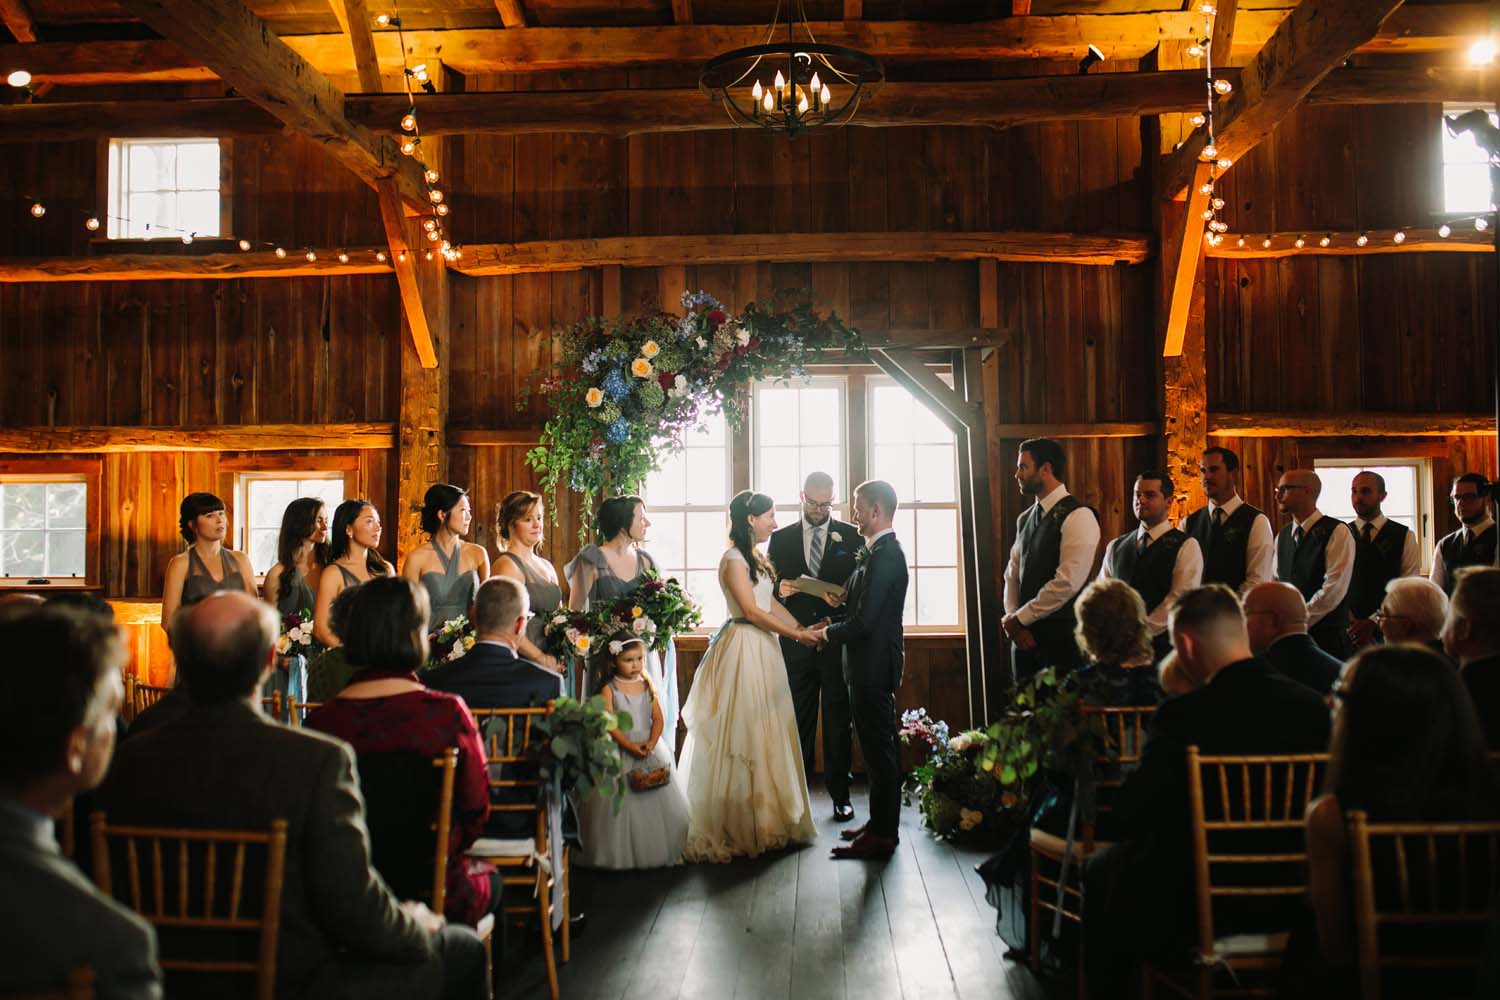 cornman farms wedding ceremony barn